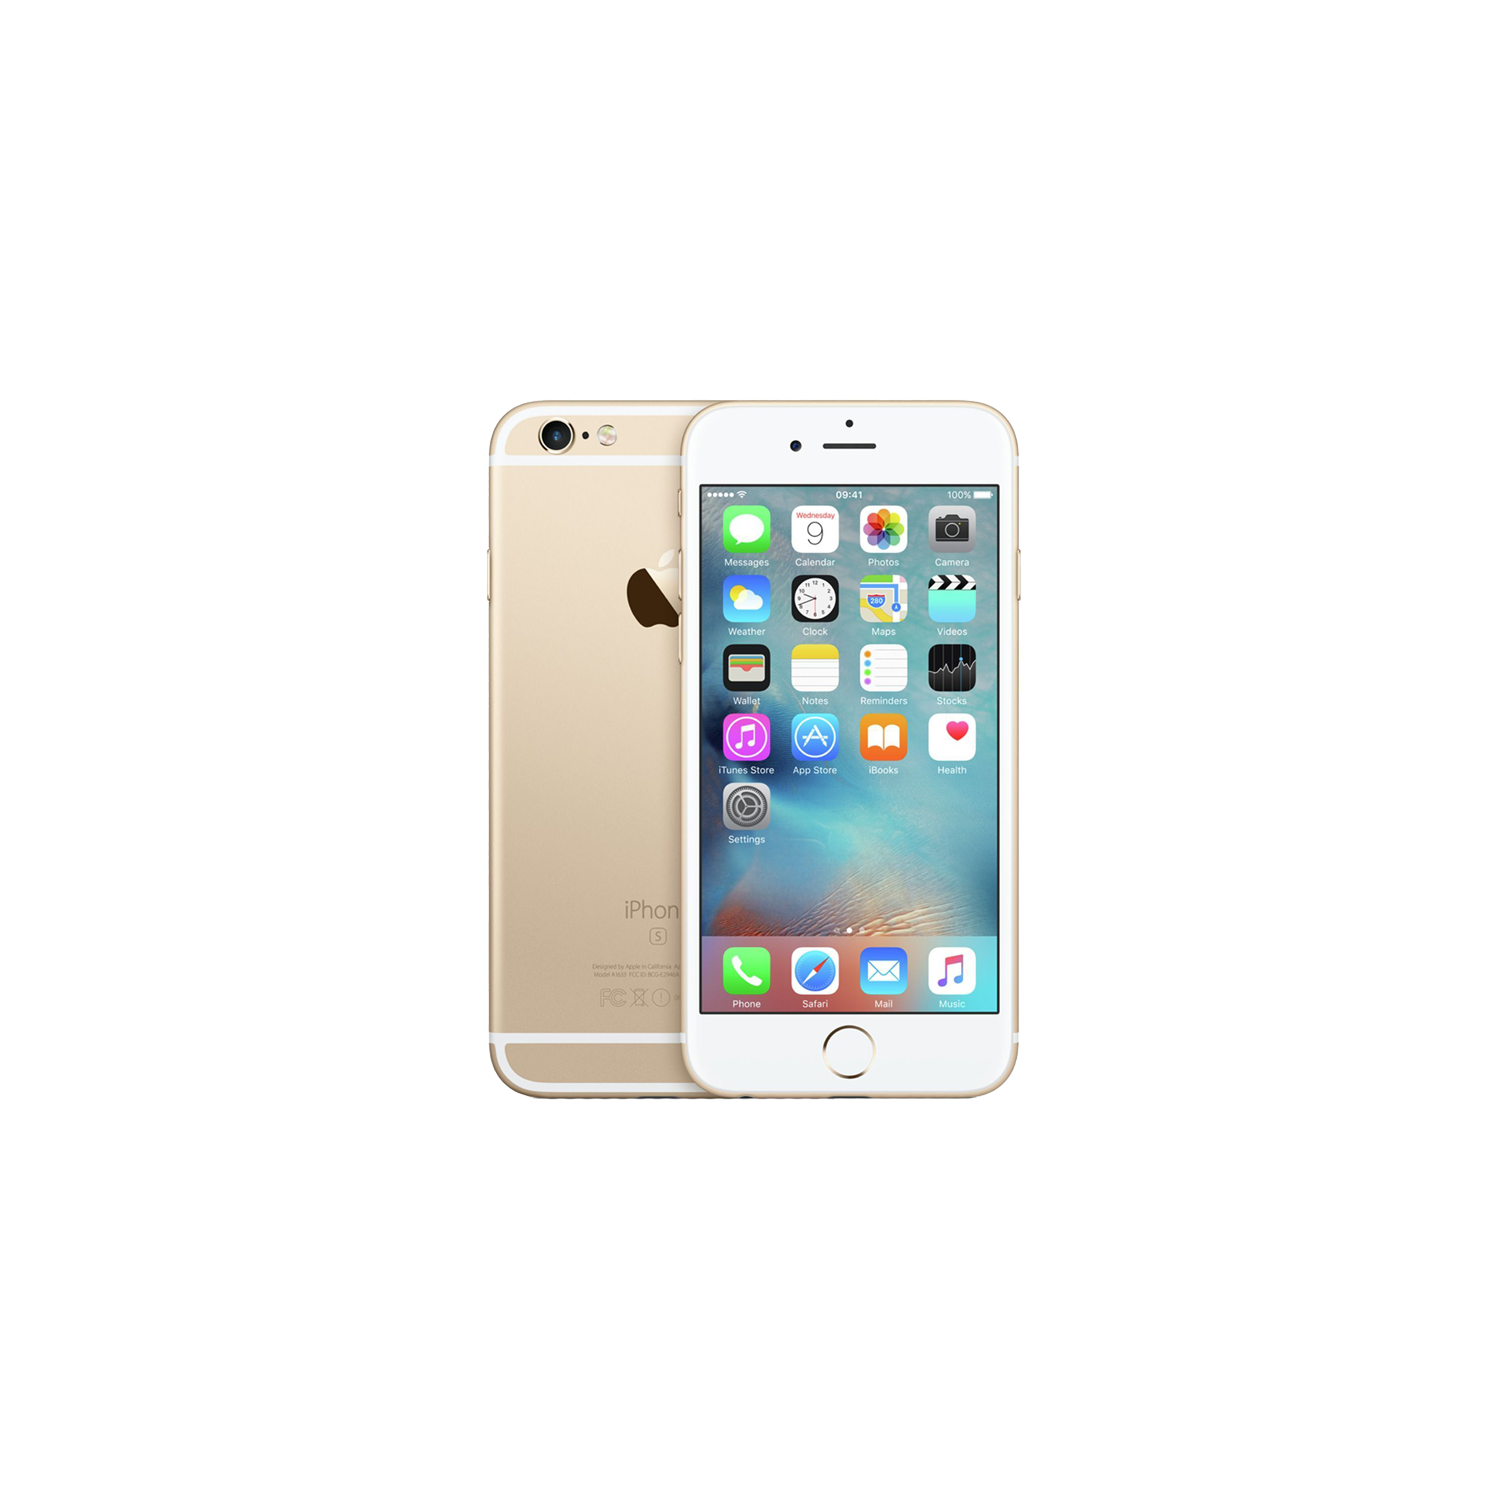 Apple iPhone 6 16gb Gold - Unlocked - Certified Pre-Owned   iPhones ... 9d83f1f141